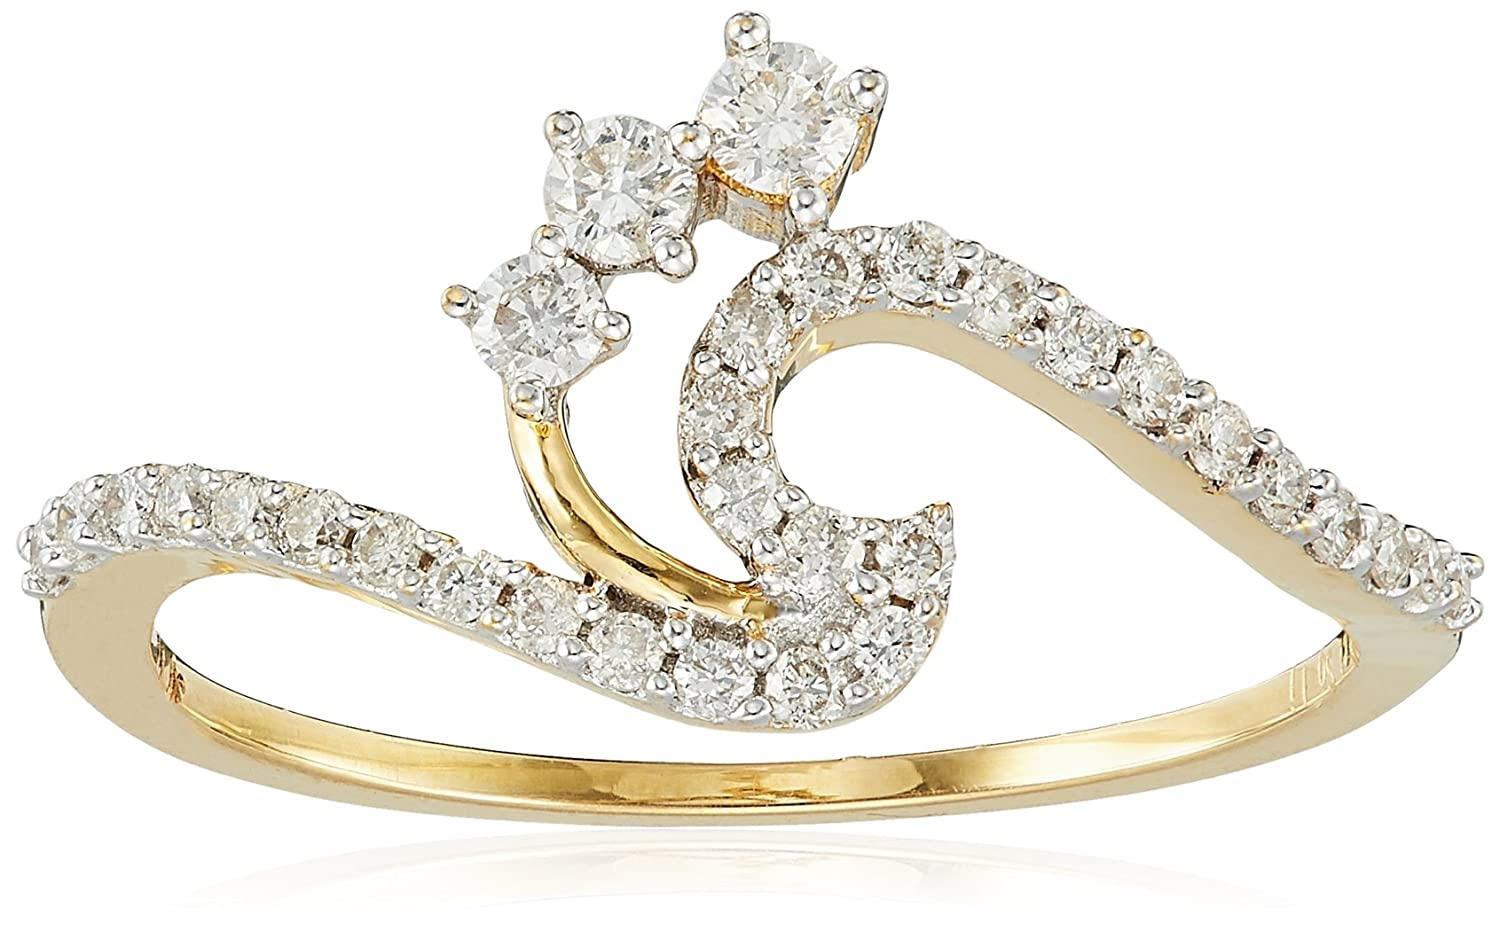 Flat 20% Off Diamond Jewelry By Amazon | Senco Gold 18KT Yellow Gold and Diamond Ring for Women @ Rs.23,376